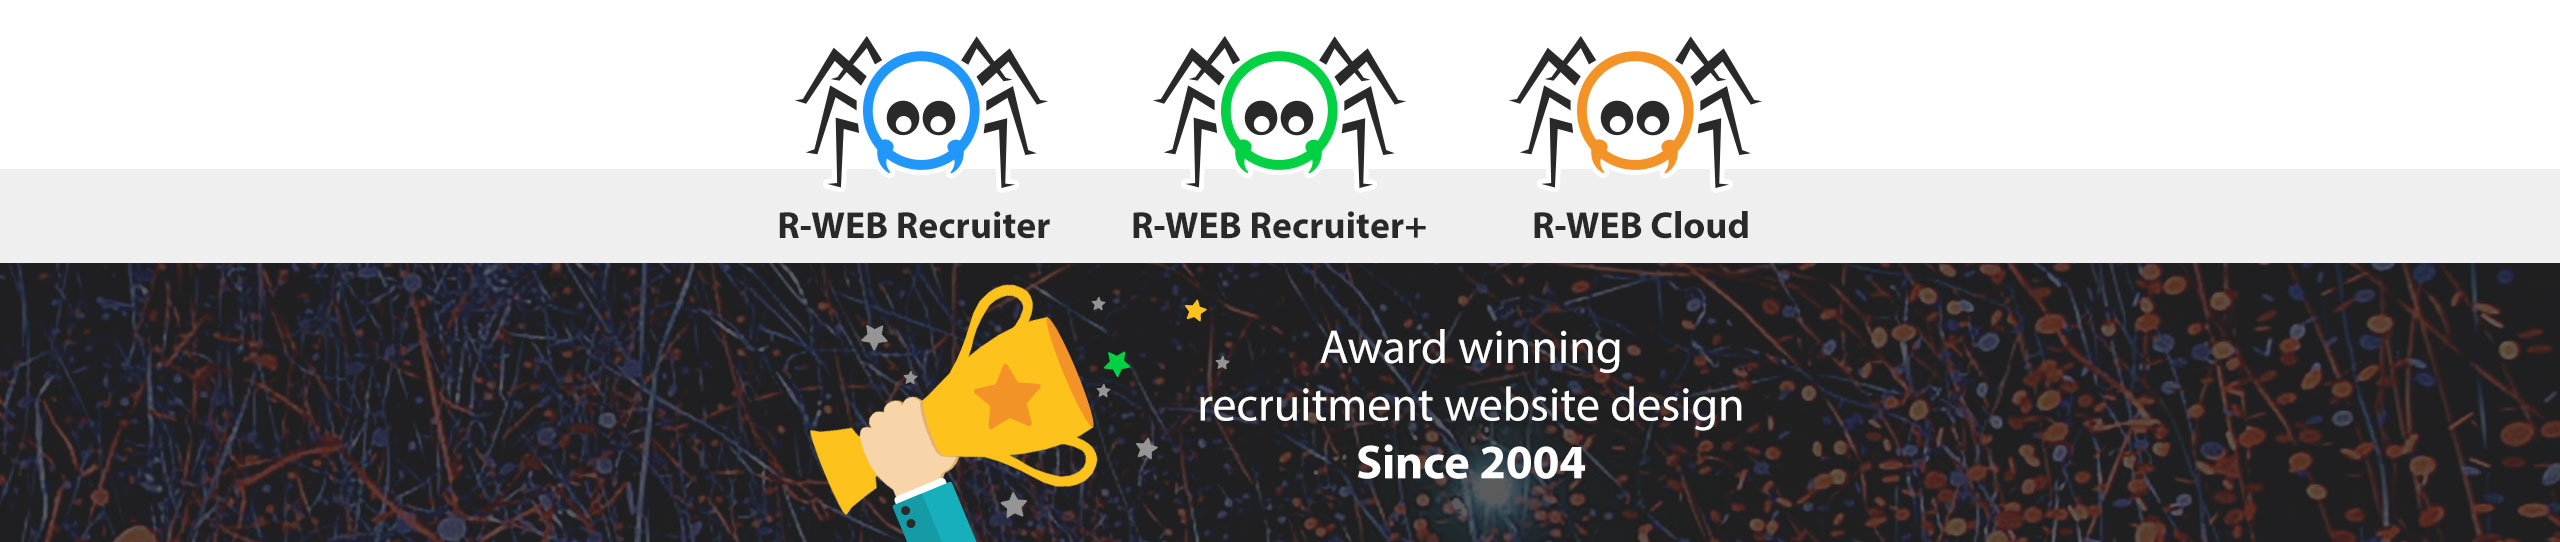 Web design for recruiters